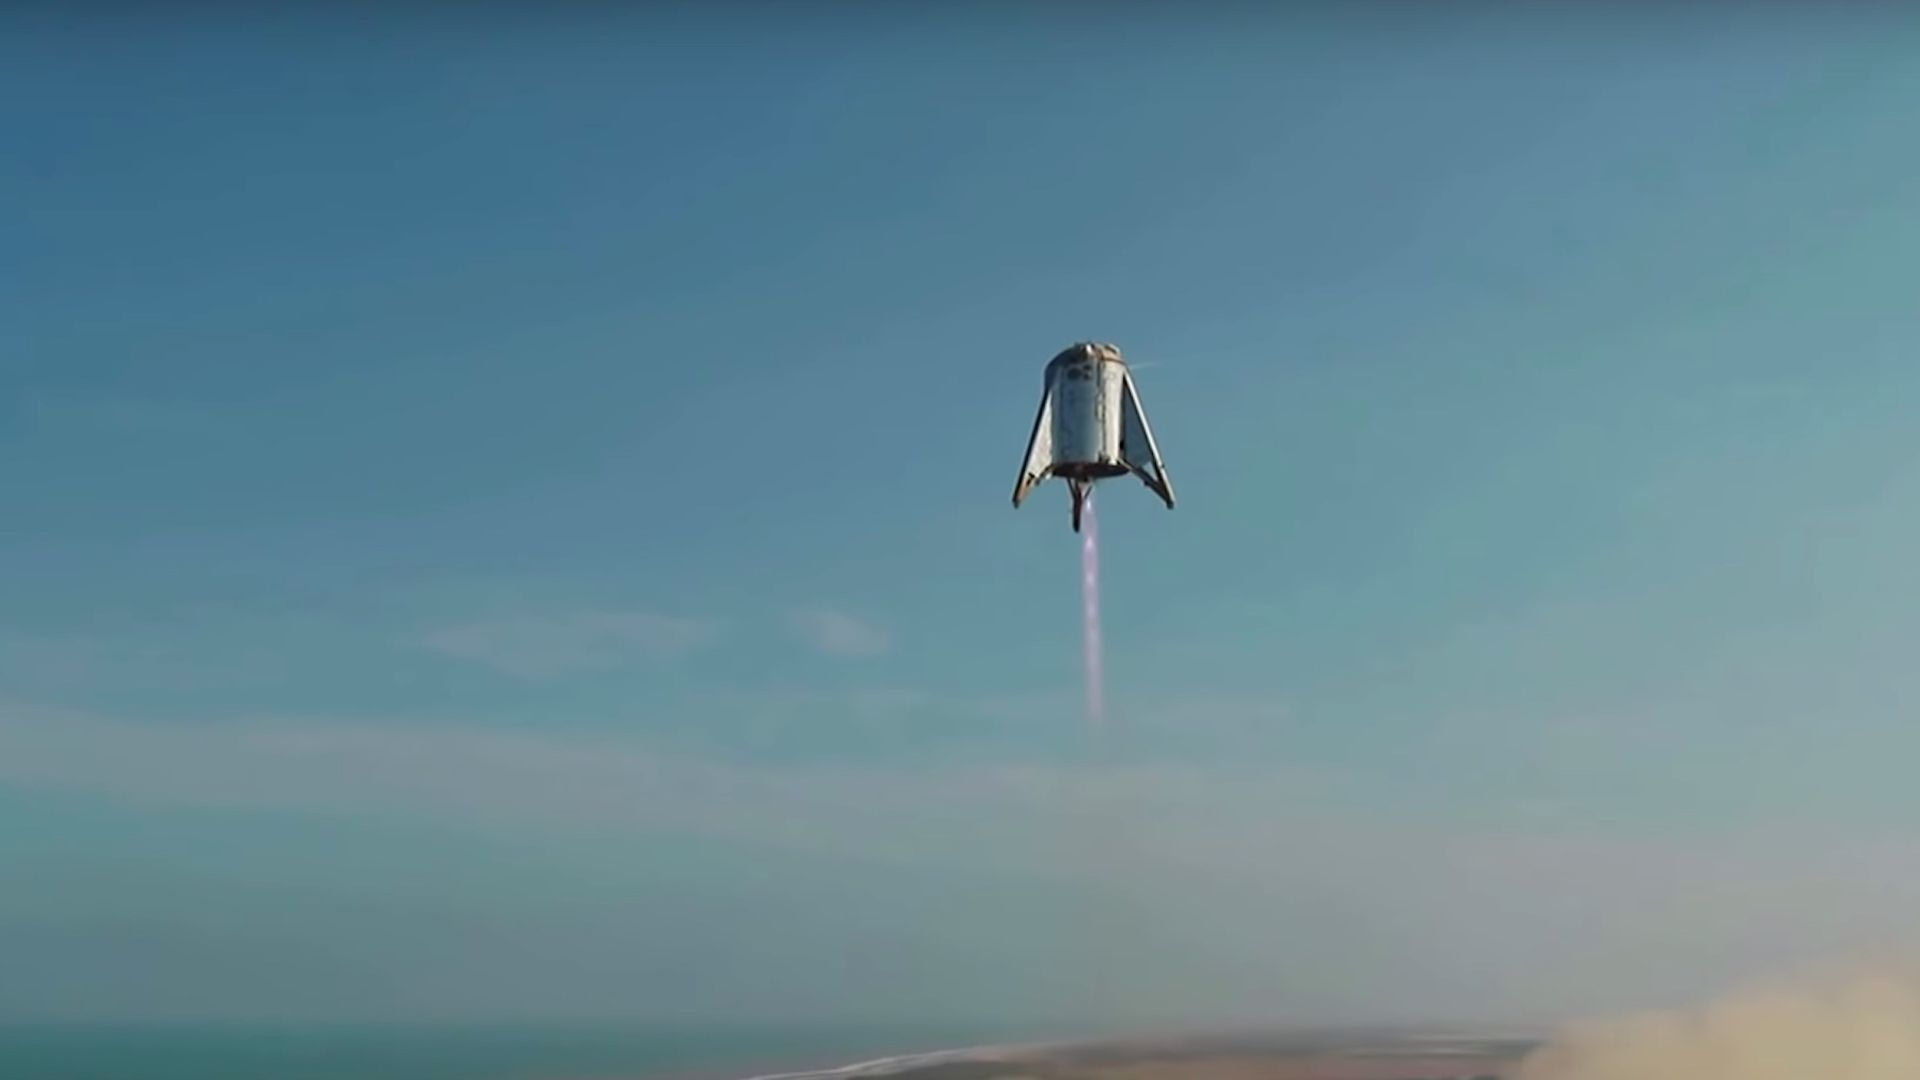 Starhopper flying through the sky above Texas. Photo: SpaceX